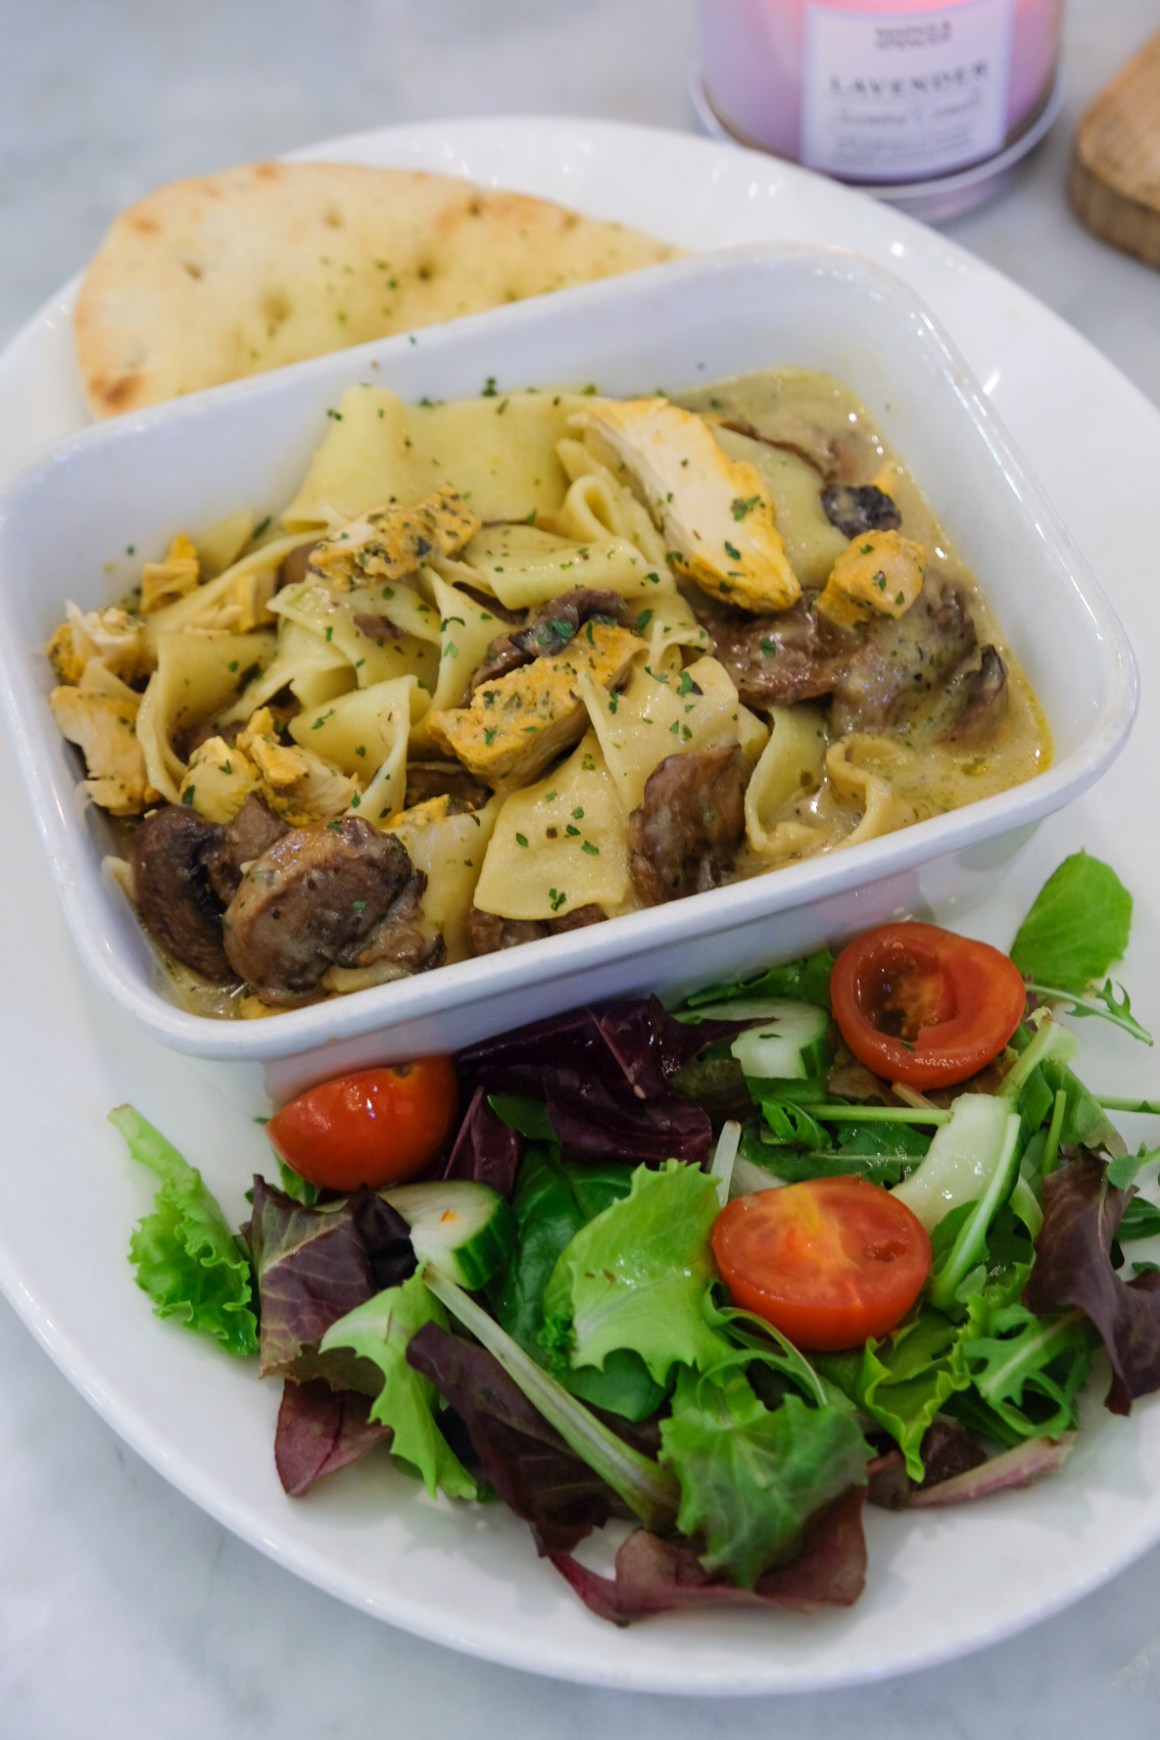 M&S Cafe New Menu Items - Chicken & Mushroom Pappardelle ($18)